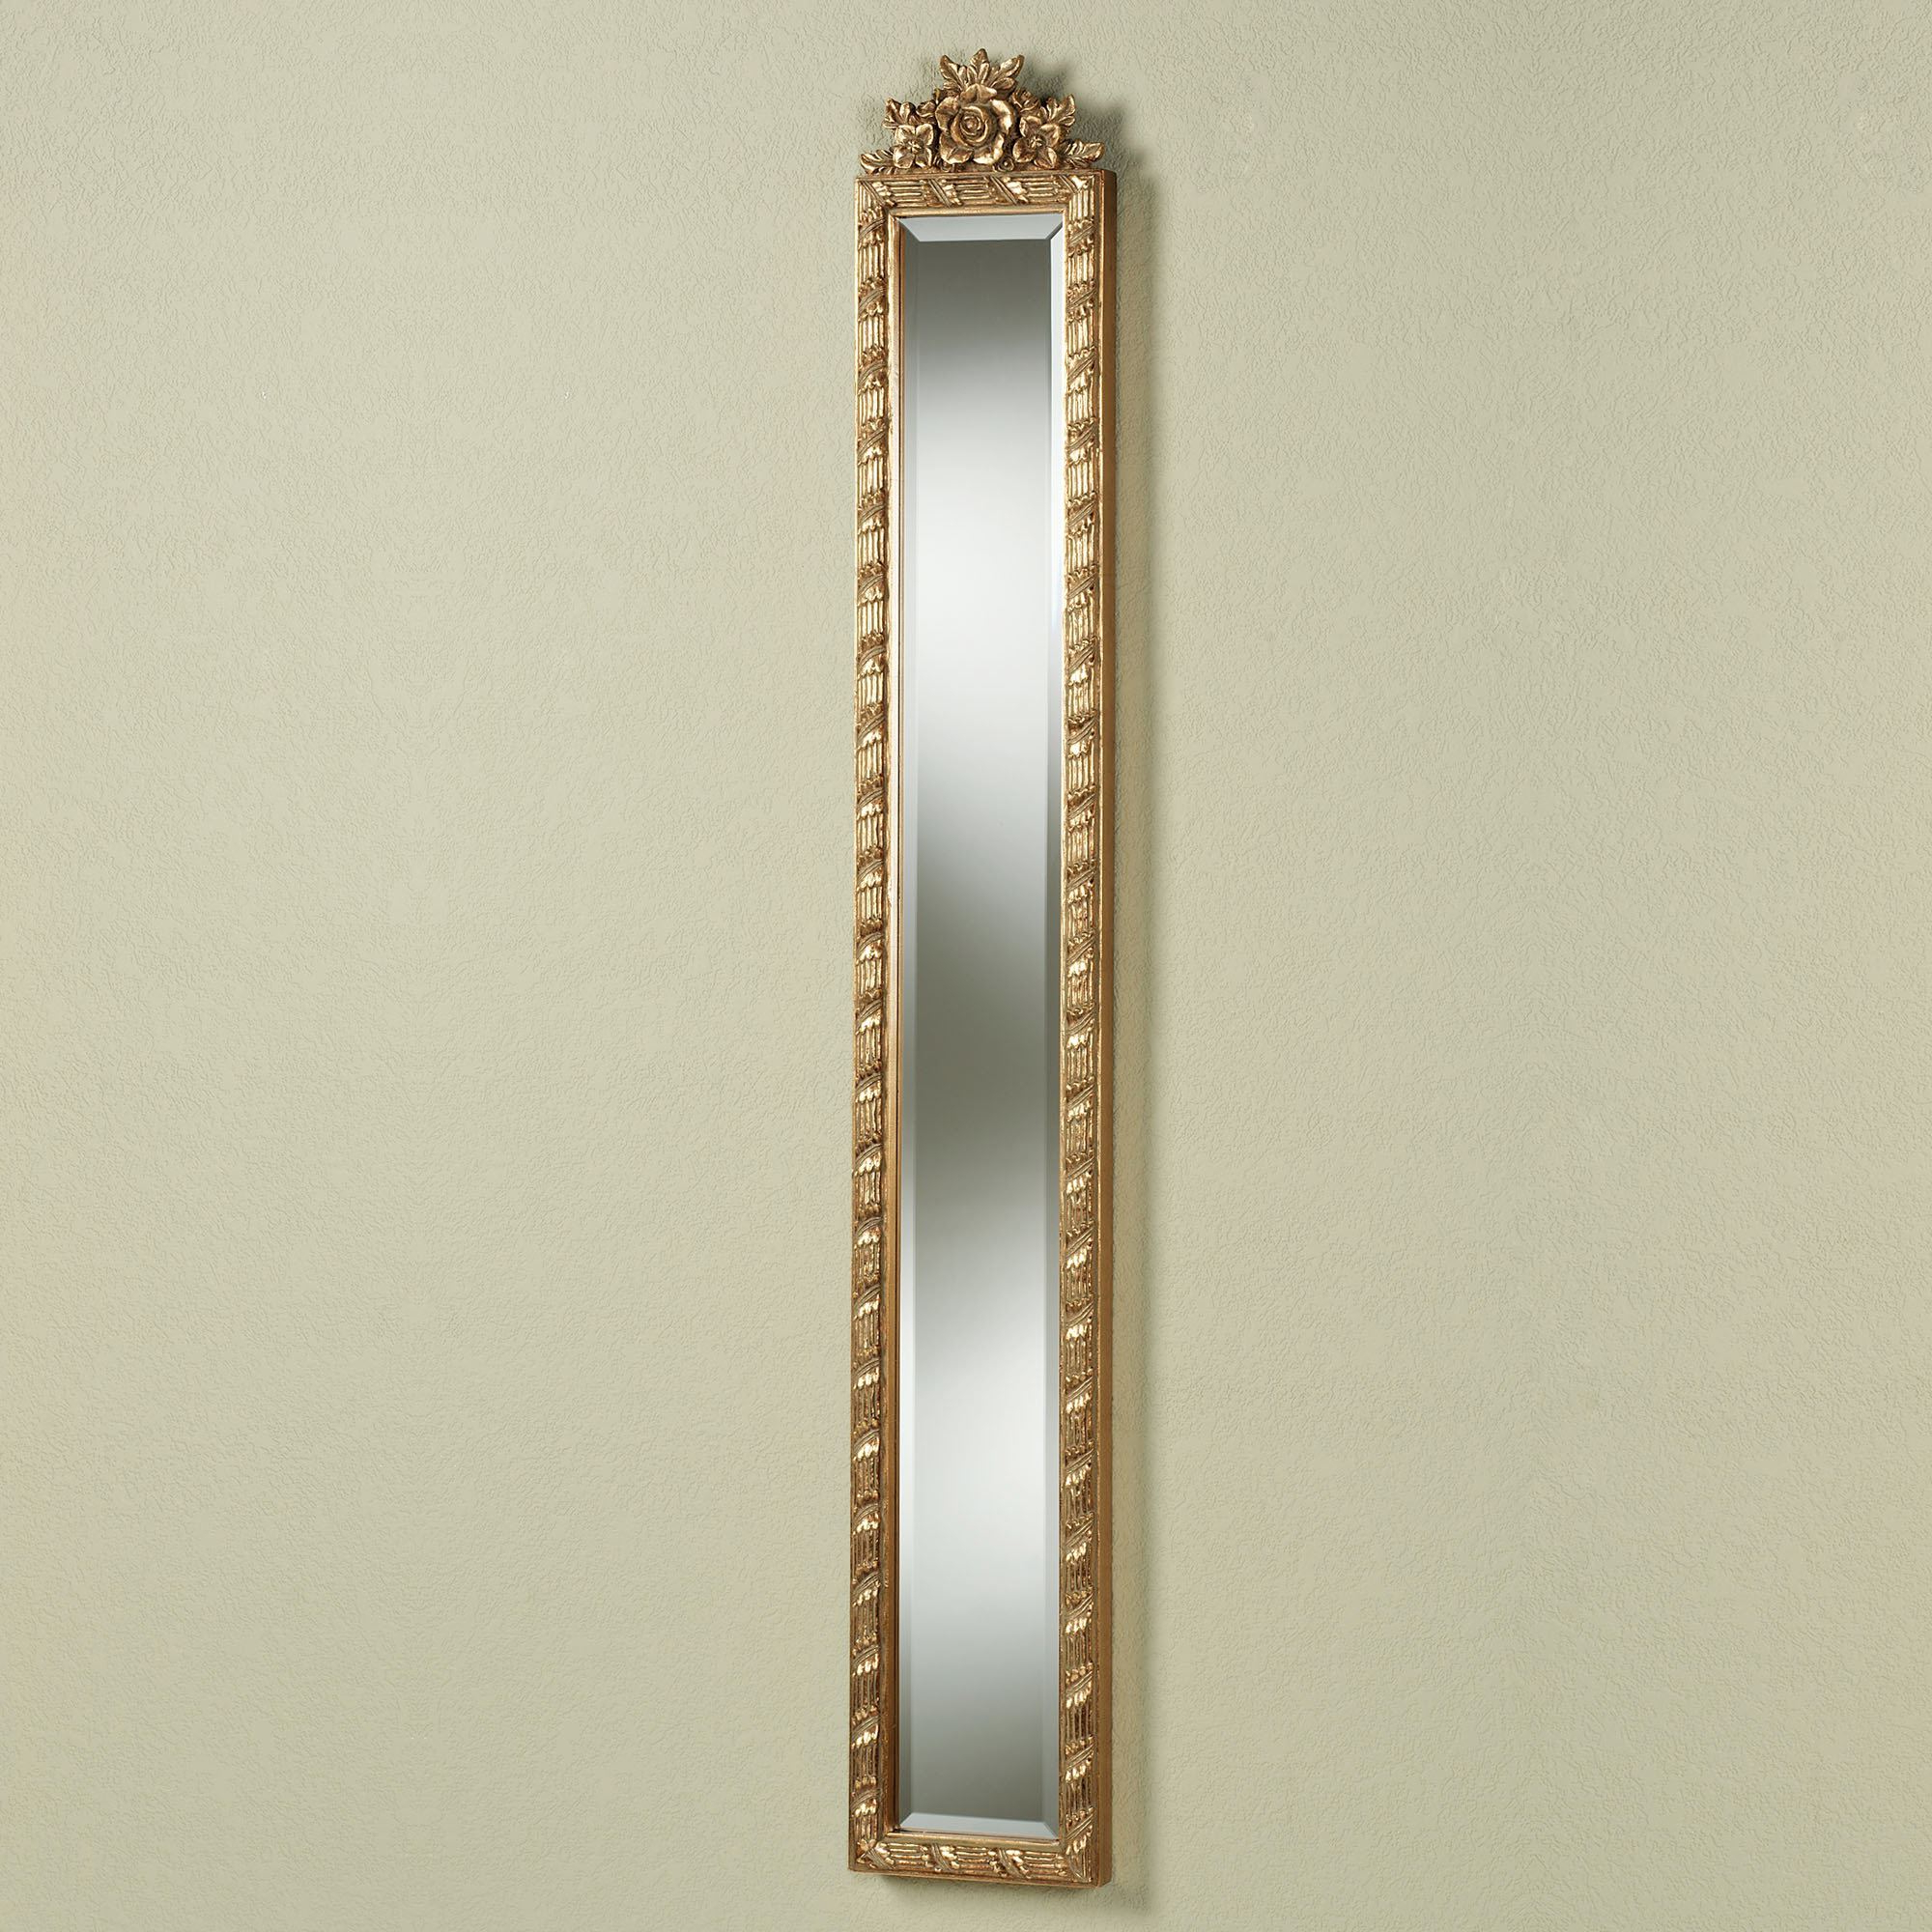 Narrow Wall Mirrors Intended For Famous Giuliana Antique Gold Floral Wall Mirror Panel (Gallery 5 of 20)